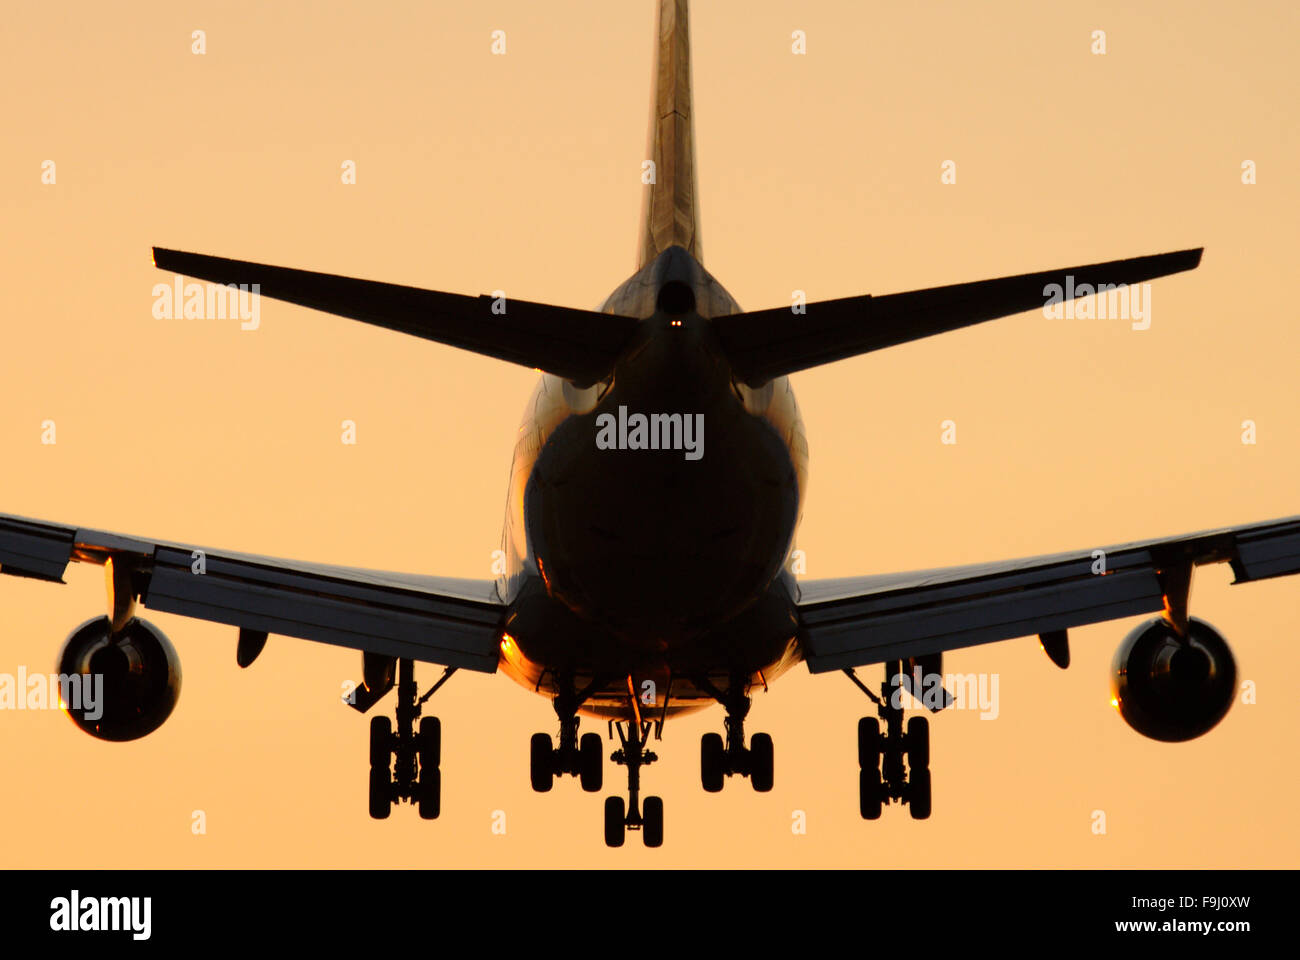 Silhouette of a Boeing 747-400 with Undercarriage During Landing - Stock Image